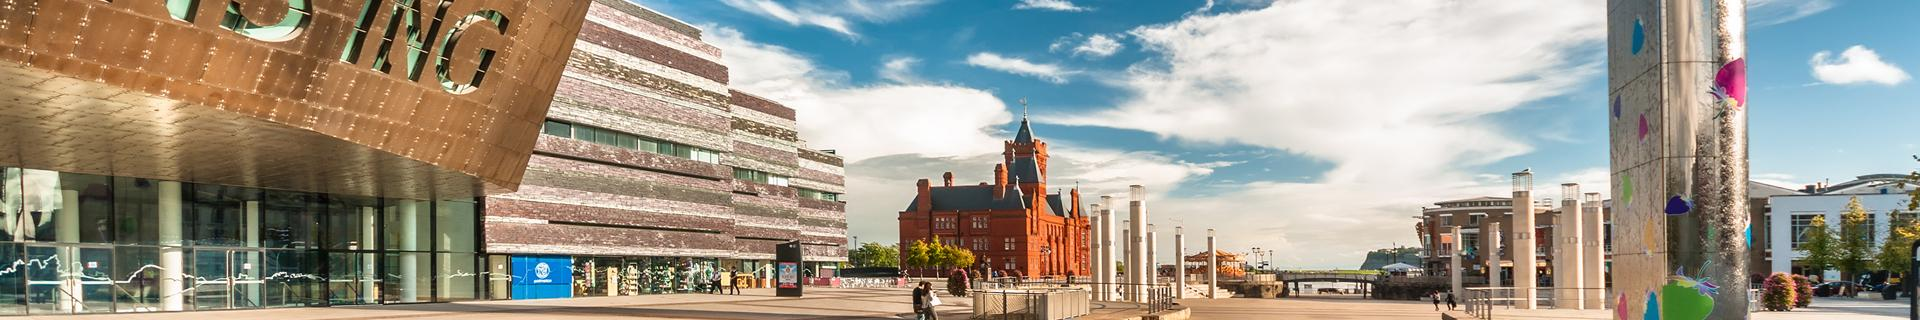 A view across Cardiff